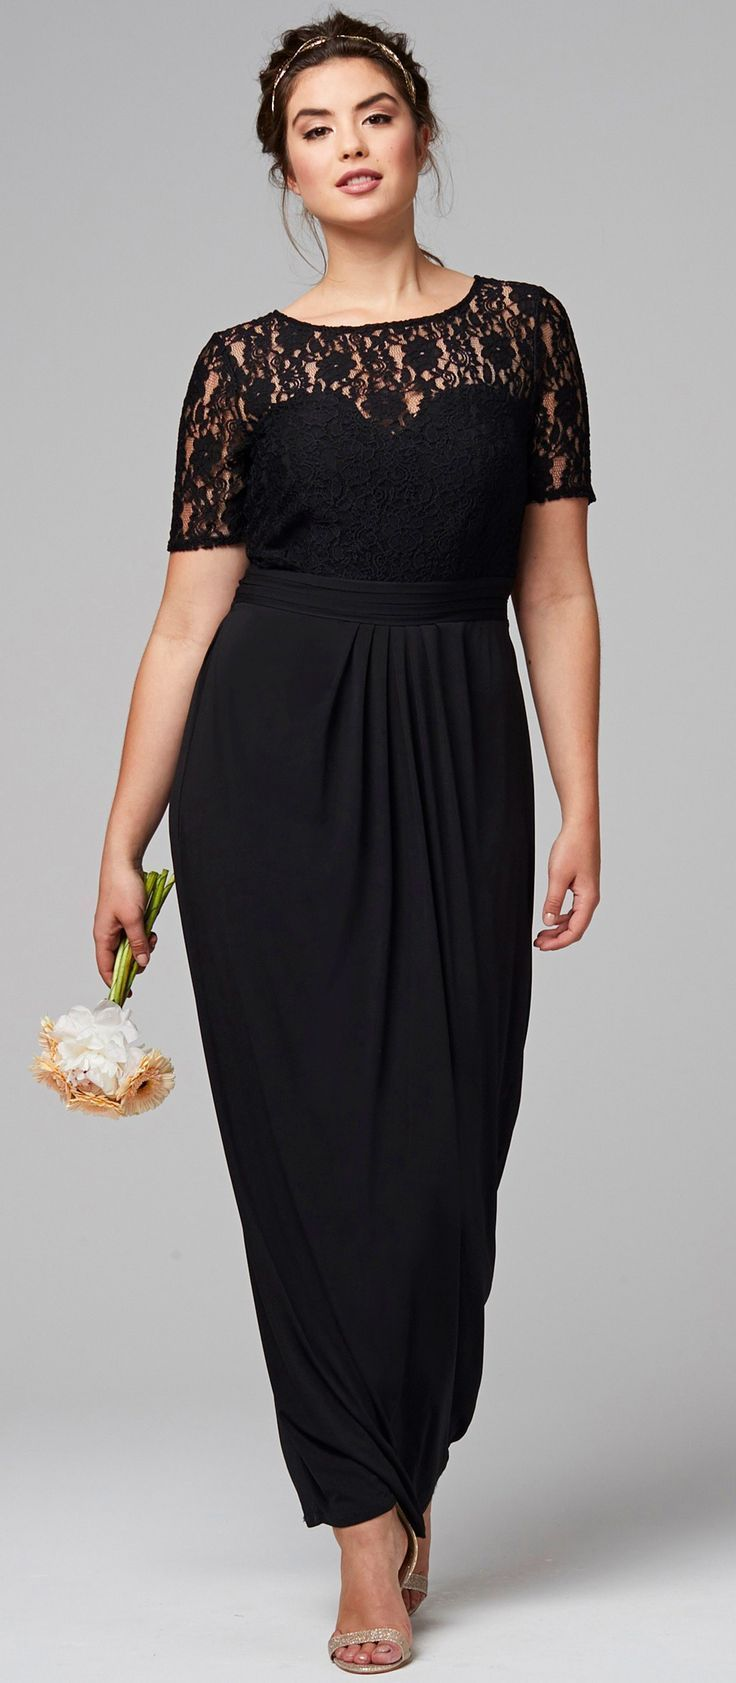 472f53aa49a 45 Plus Size Wedding Guest Dresses  with Sleeves  - Plus Size Cocktail  Dresses - alexawebb.com